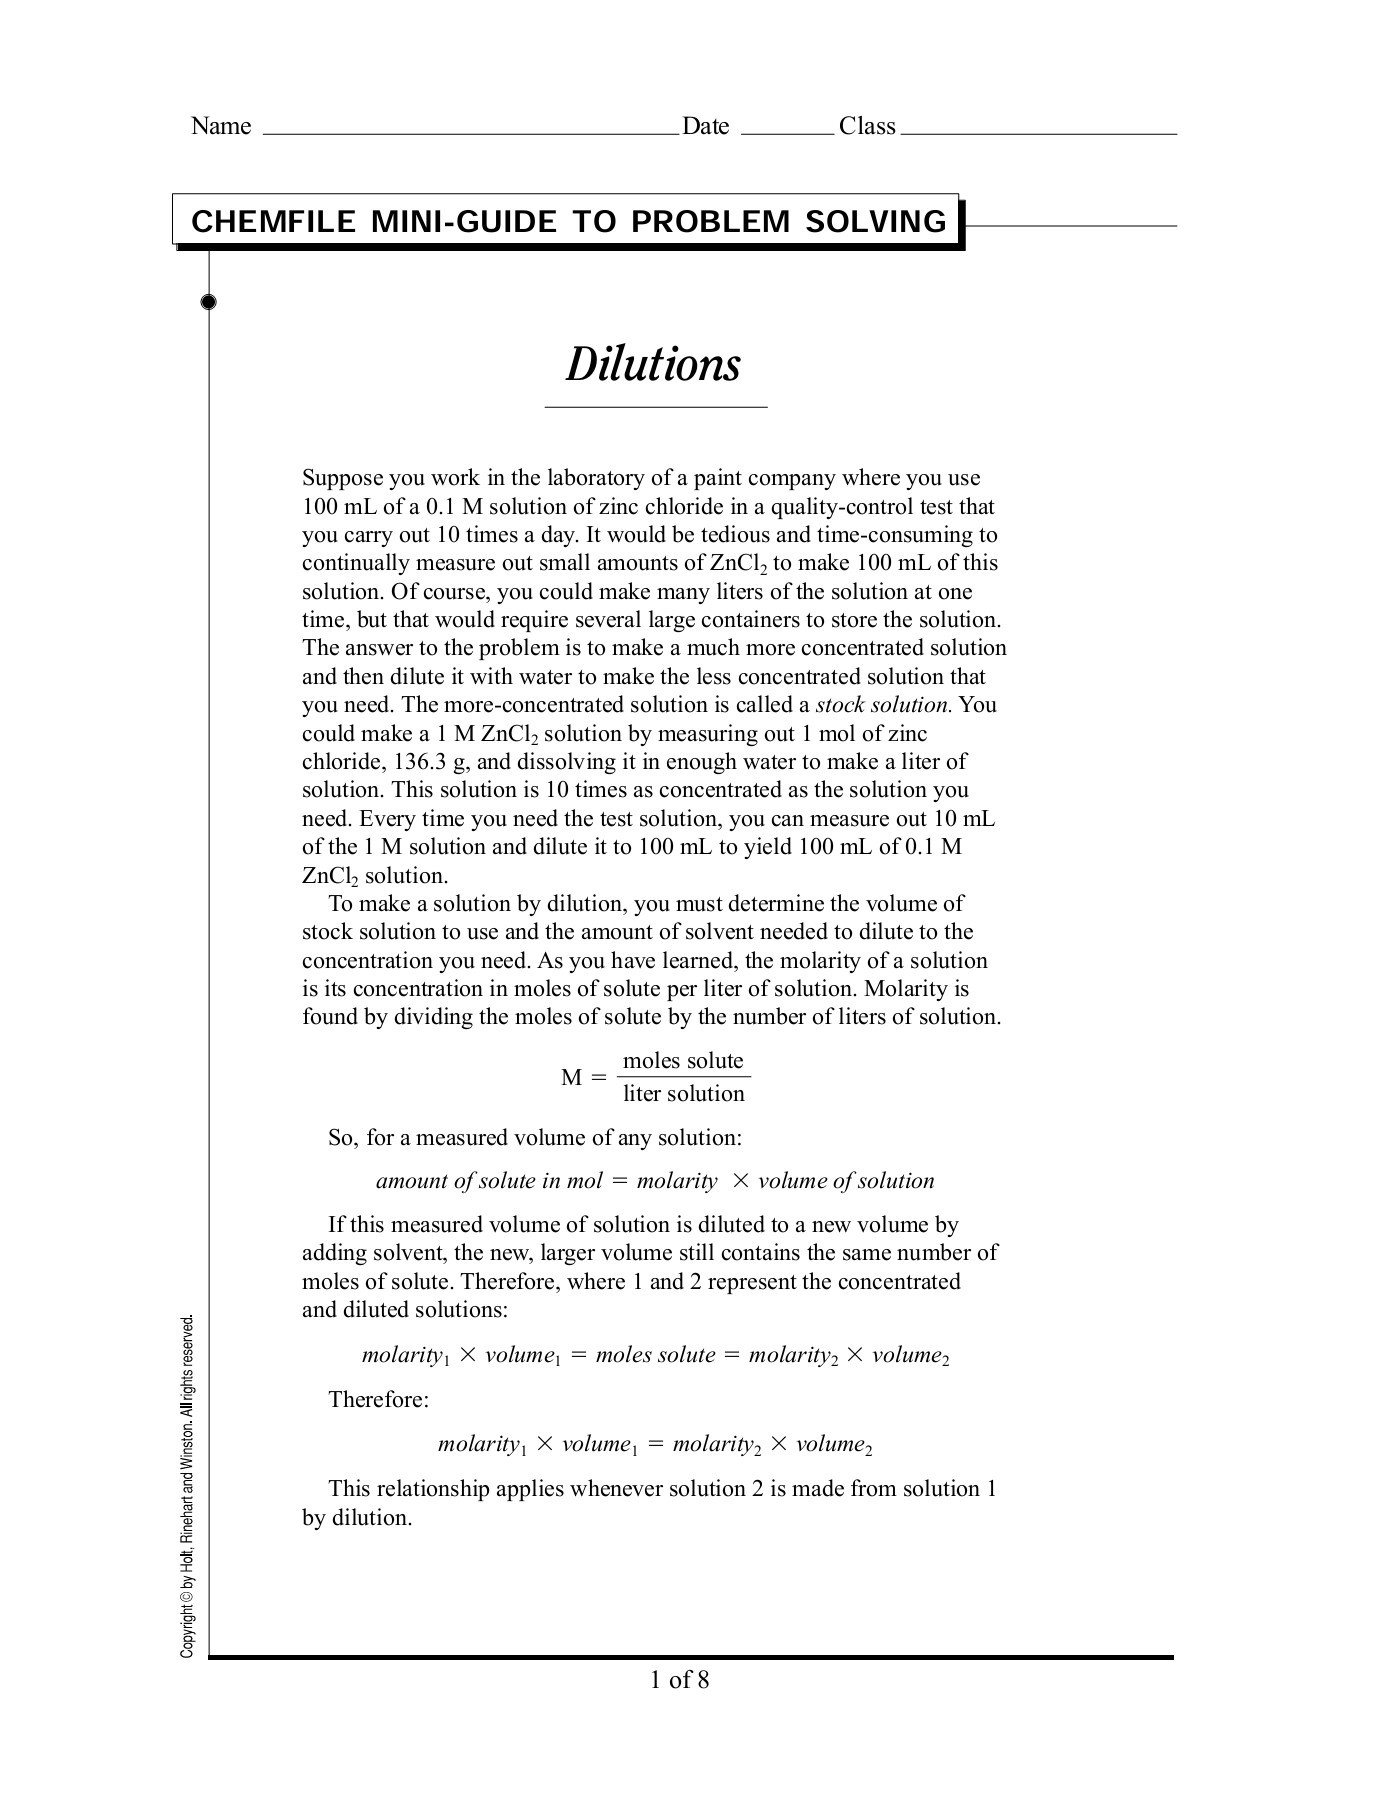 Chemfile Mini Guide To Problem Solving